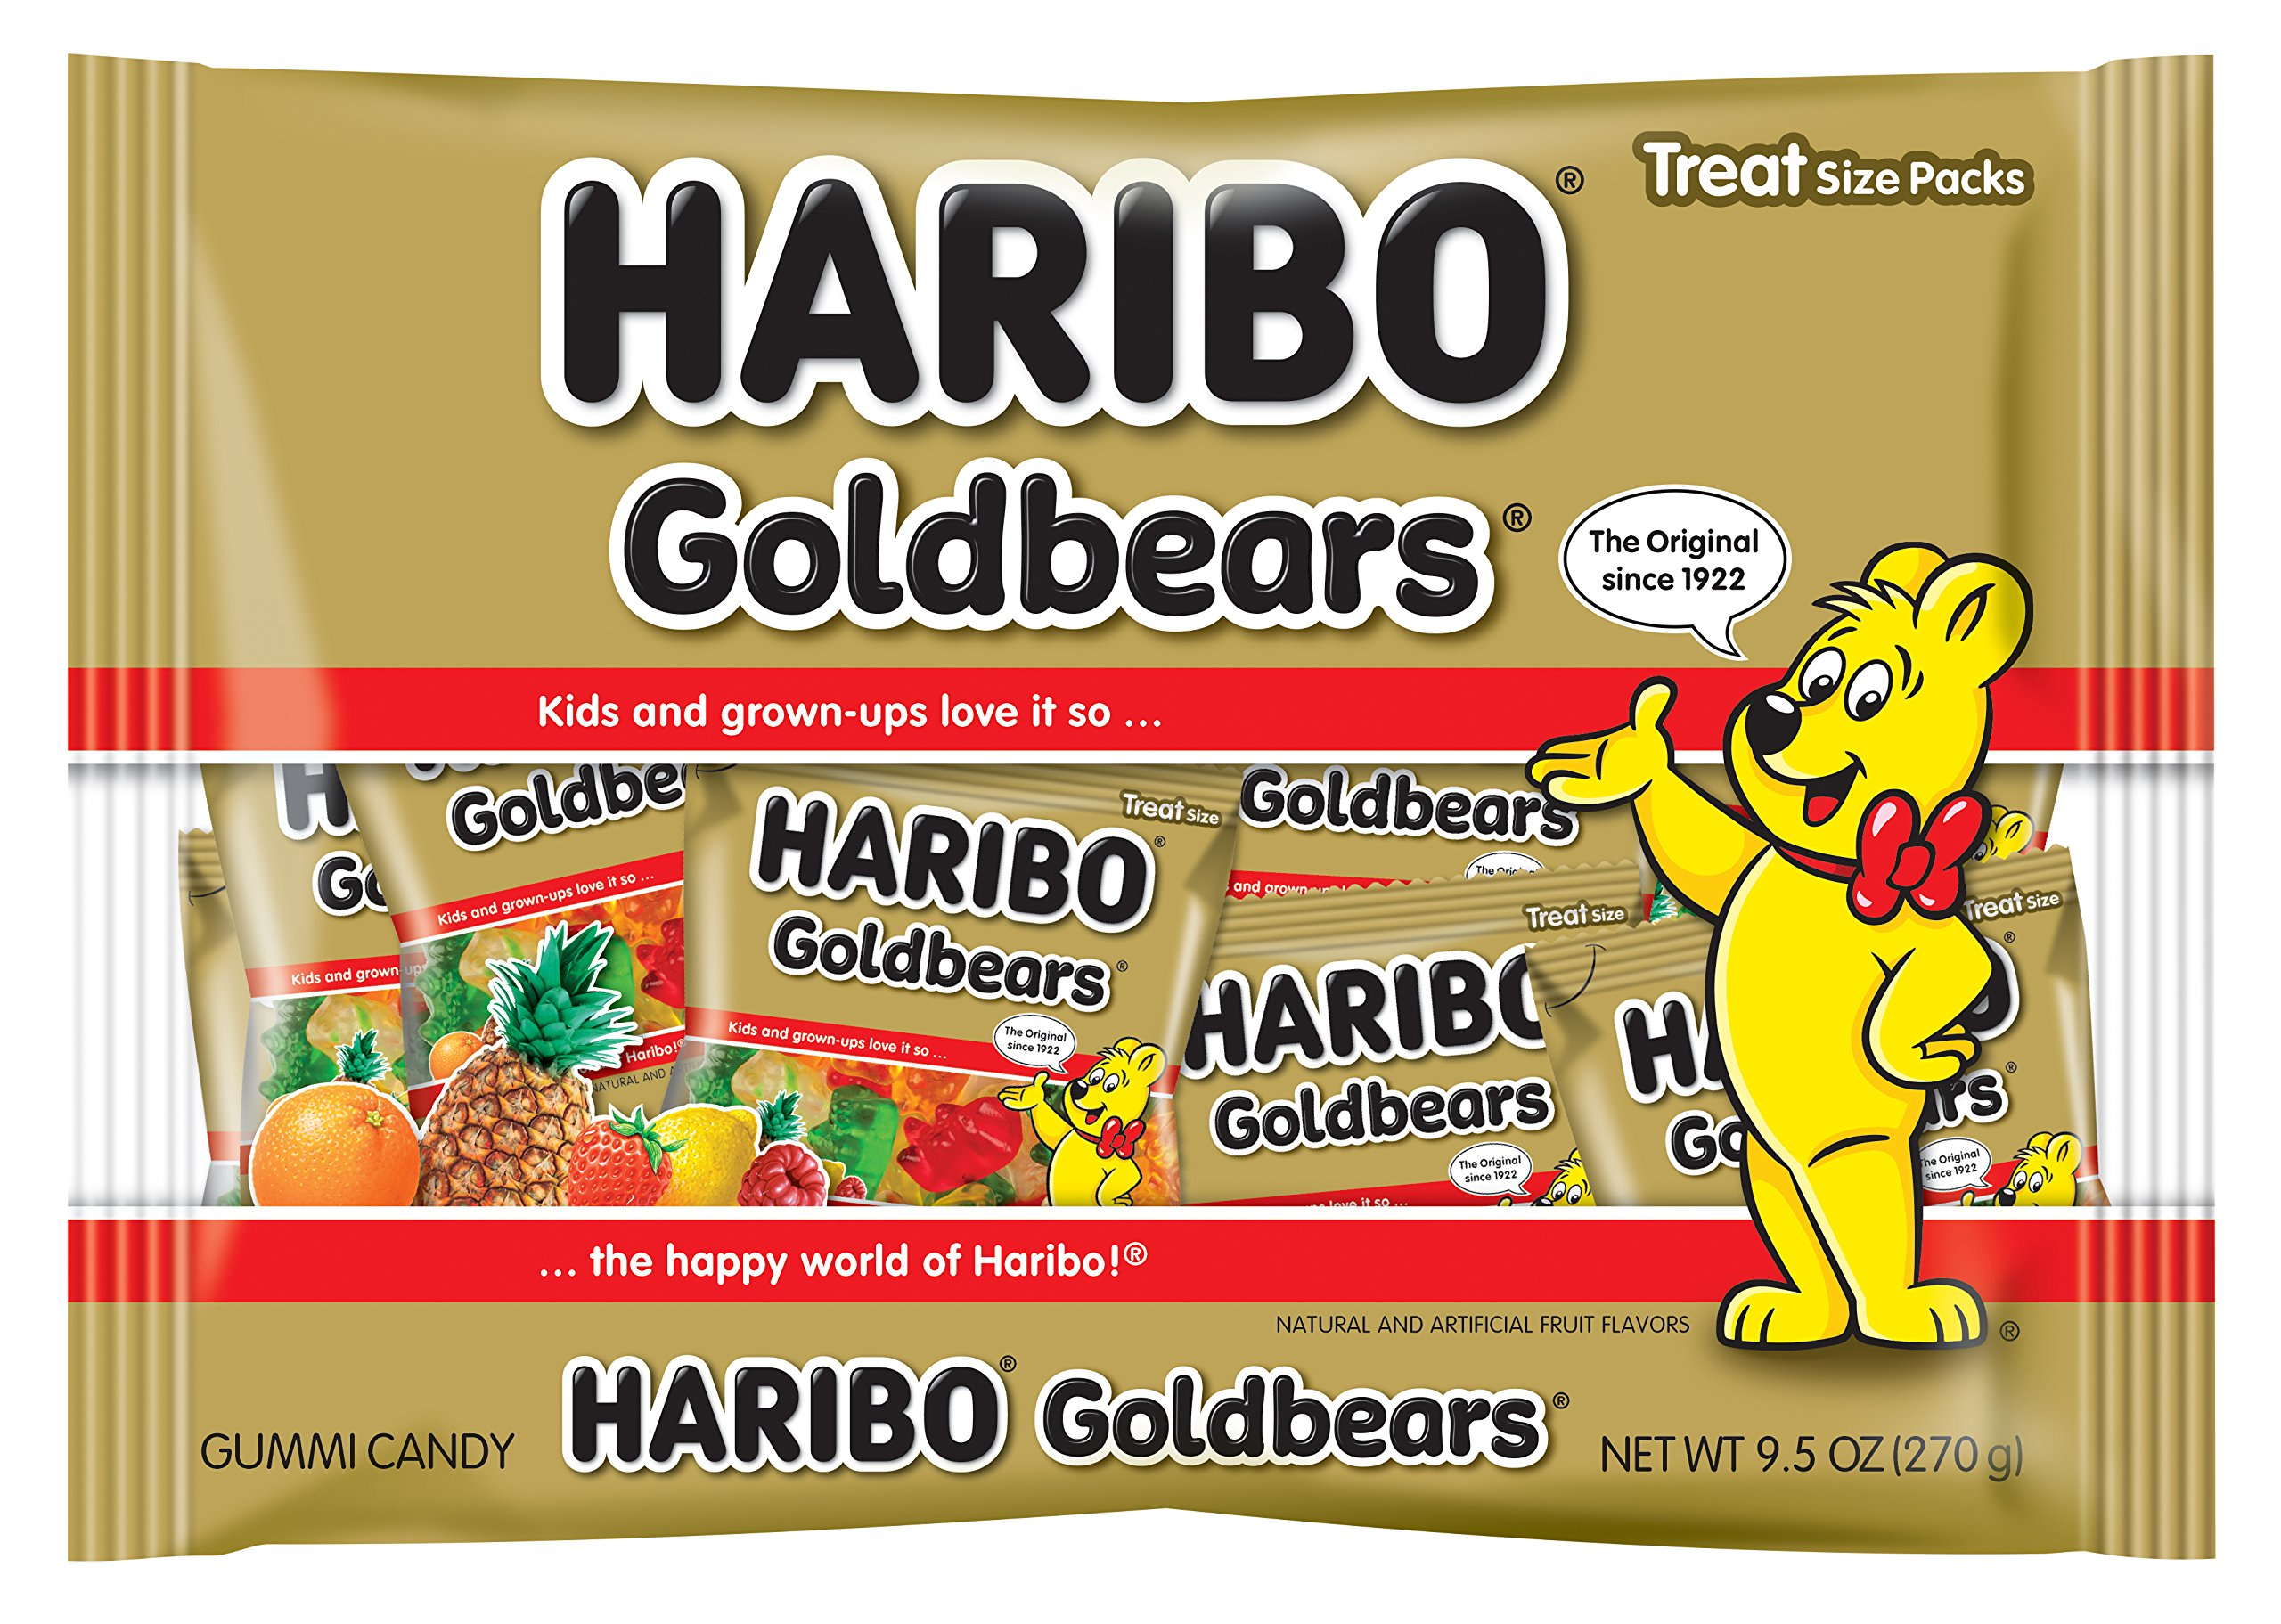 Haribo Goldbears Gummi Candy Treat Bags, Individually Wrapped Mini Bags, 9.5 Ounce (Pack of 1) by Haribo